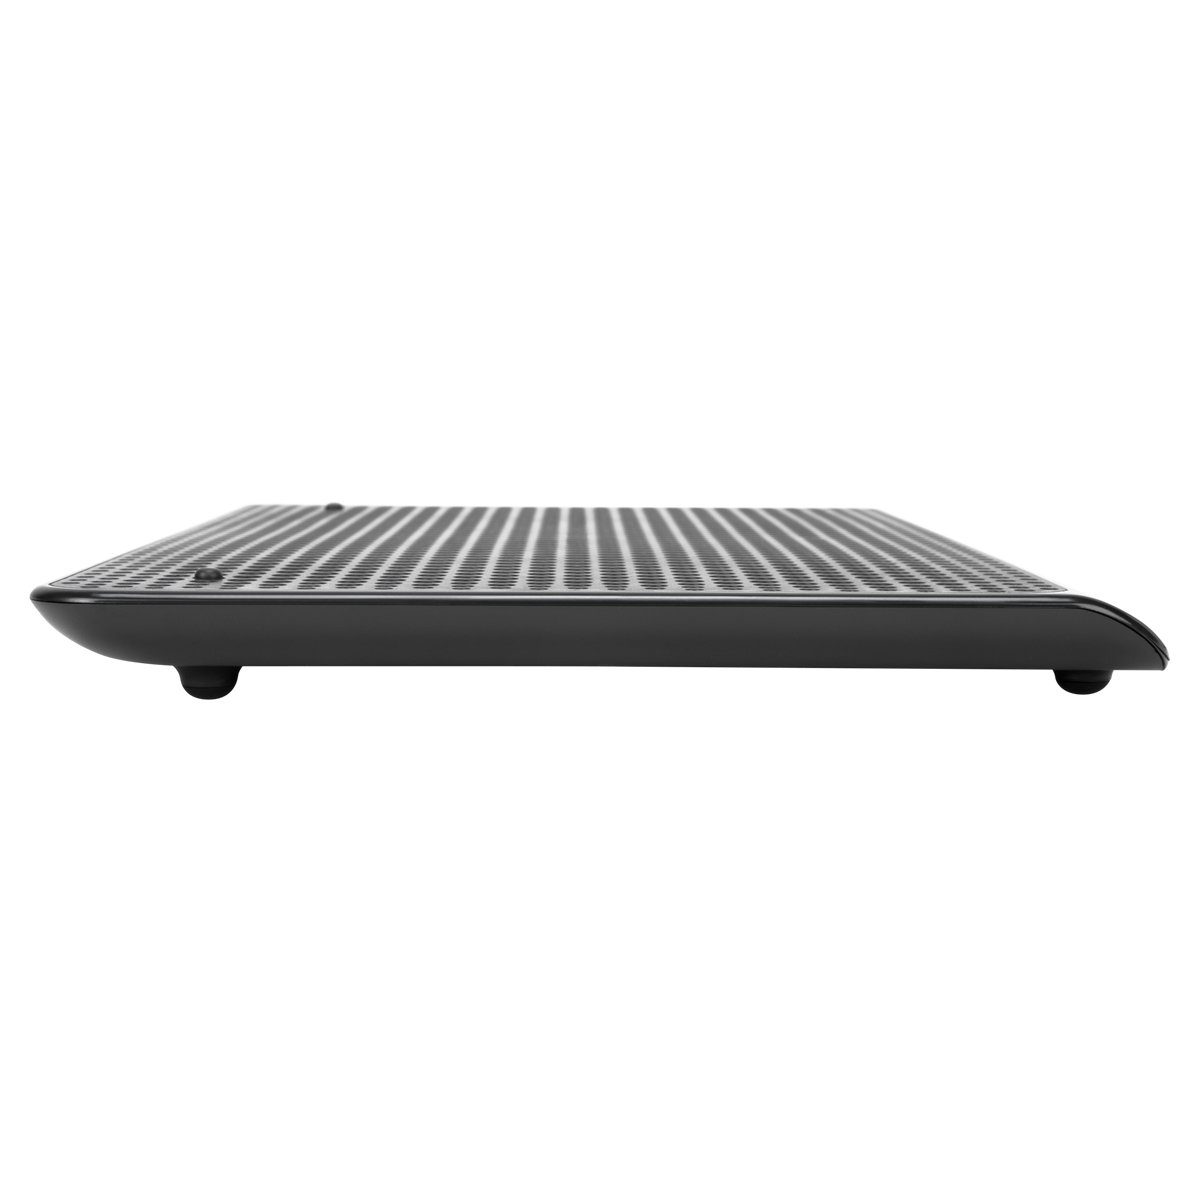 Targus Single Fan Laptop Cooling Chill Mat with USB Connection (AWE69US) by Targus (Image #5)